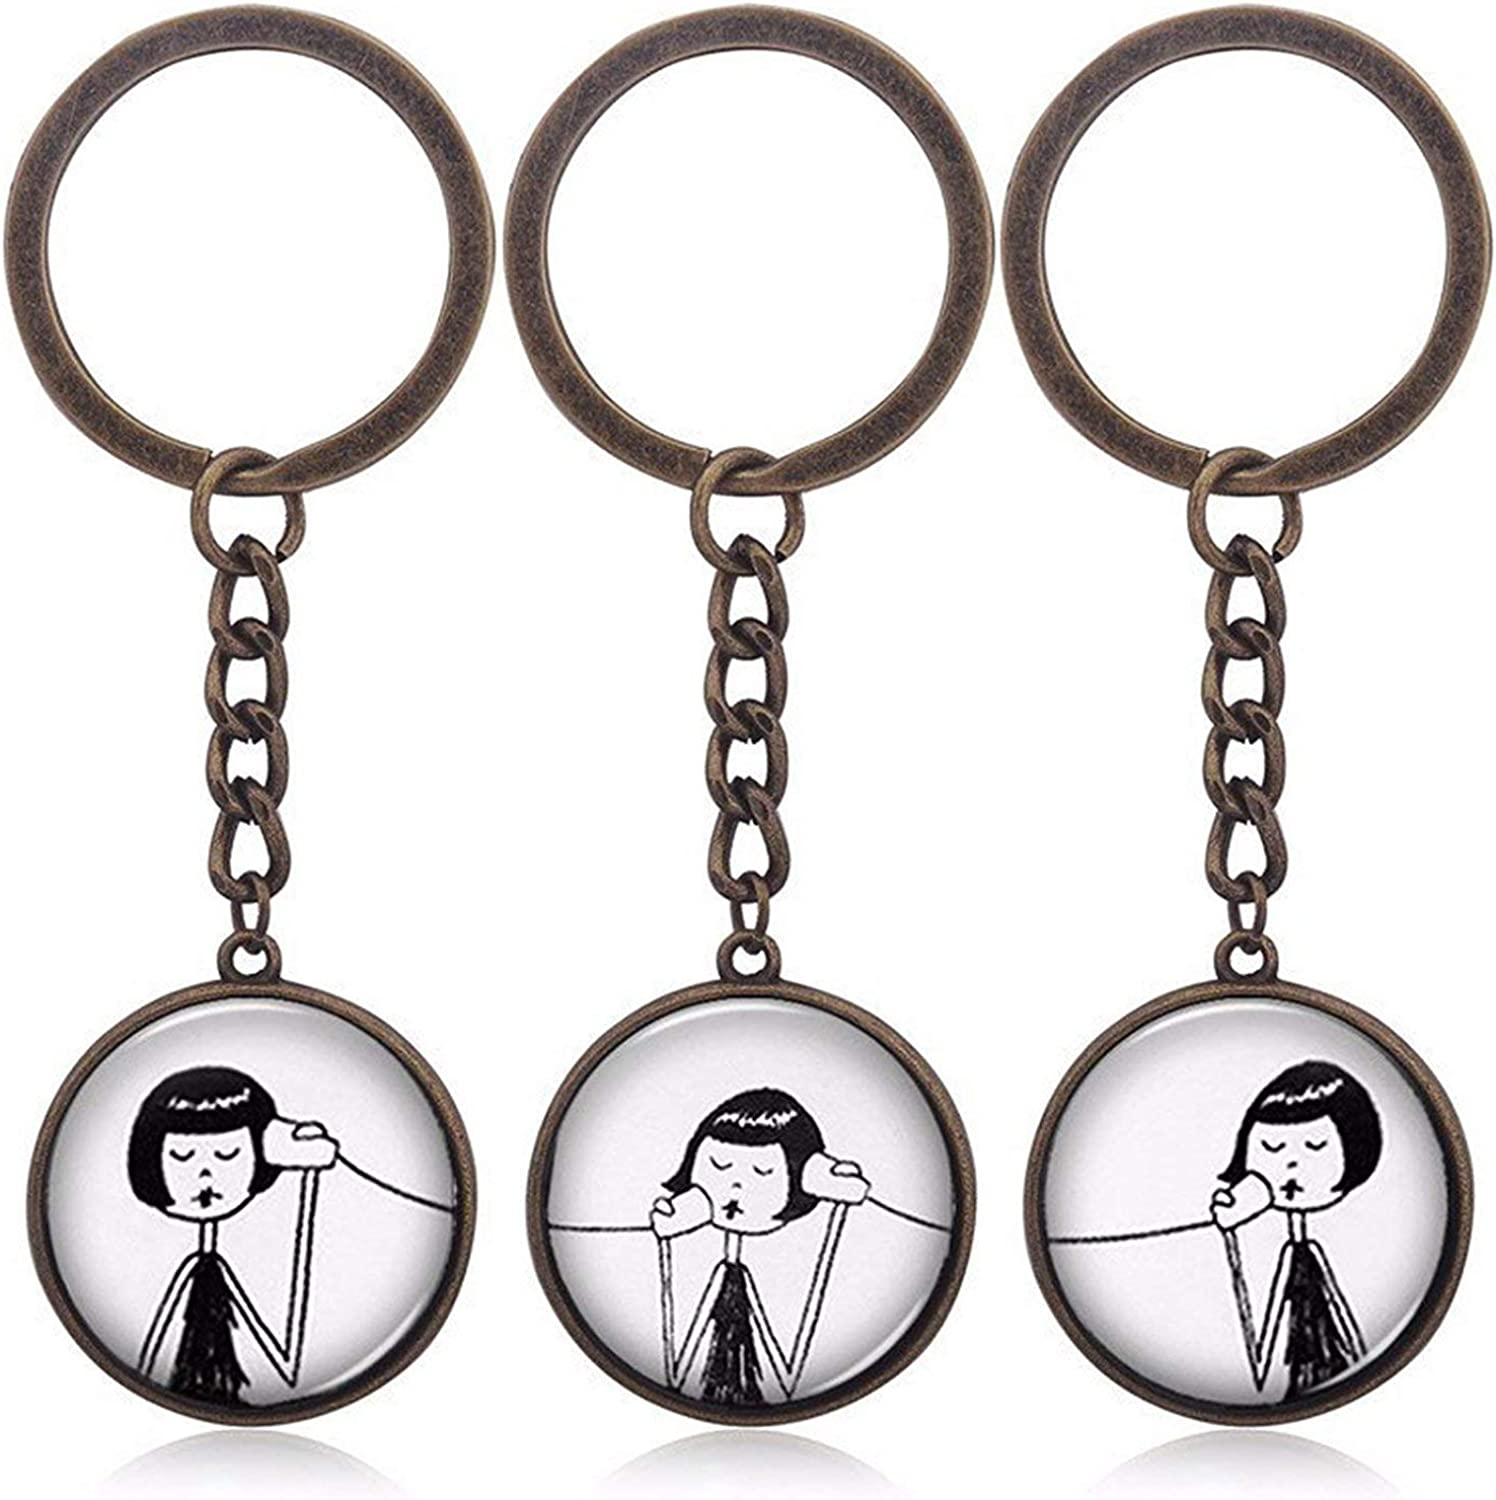 2019 New Hot Fashion Jewelry Creative Keychain 3//2 pcs Sets Alloy Personality Phone Necklace Best Friend Forever Pendants Gifts